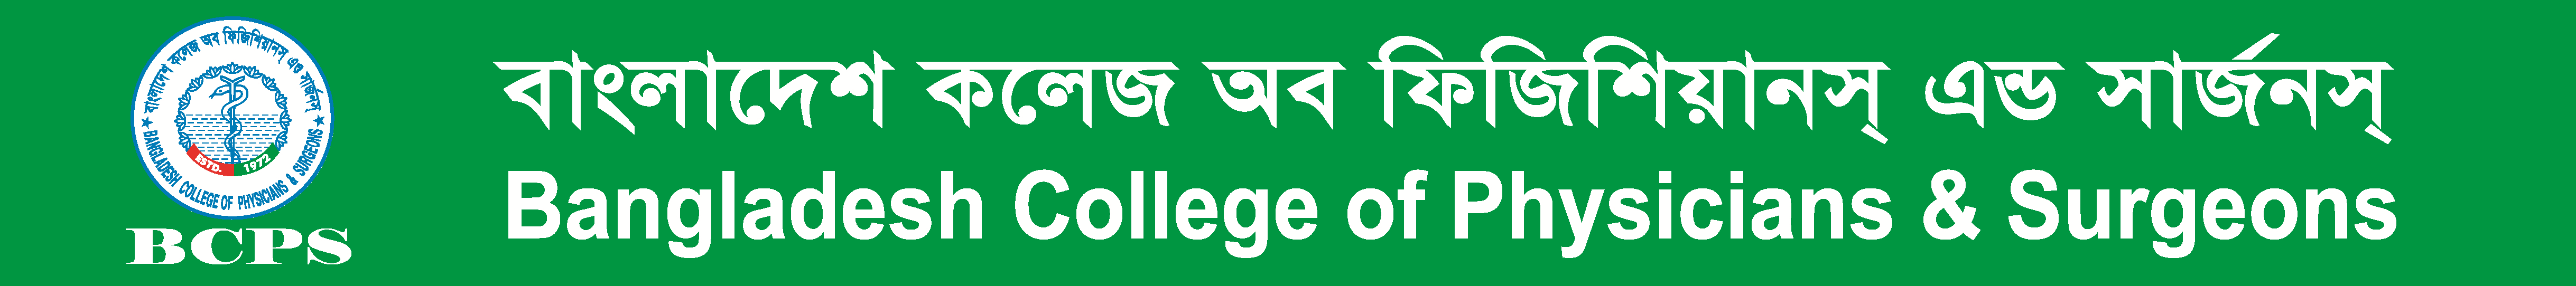 Bangladesh College of Physicians & Surgeons(BCPS)